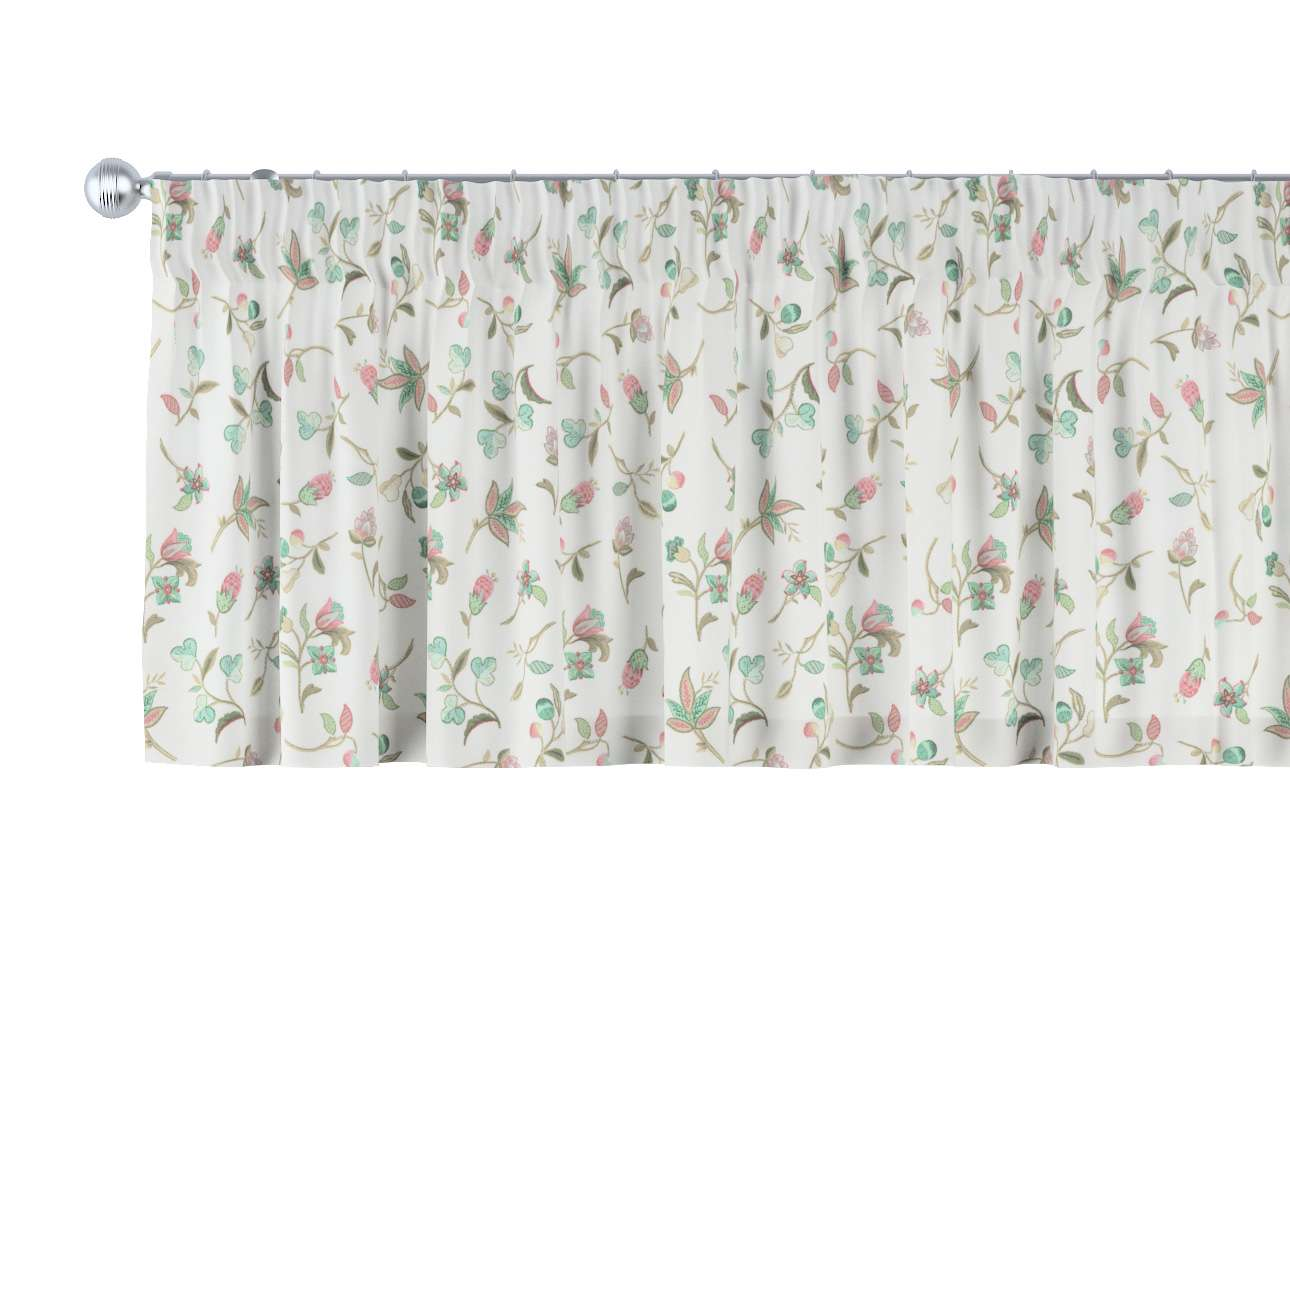 Pencil pleat pelmet in collection Londres, fabric: 122-02